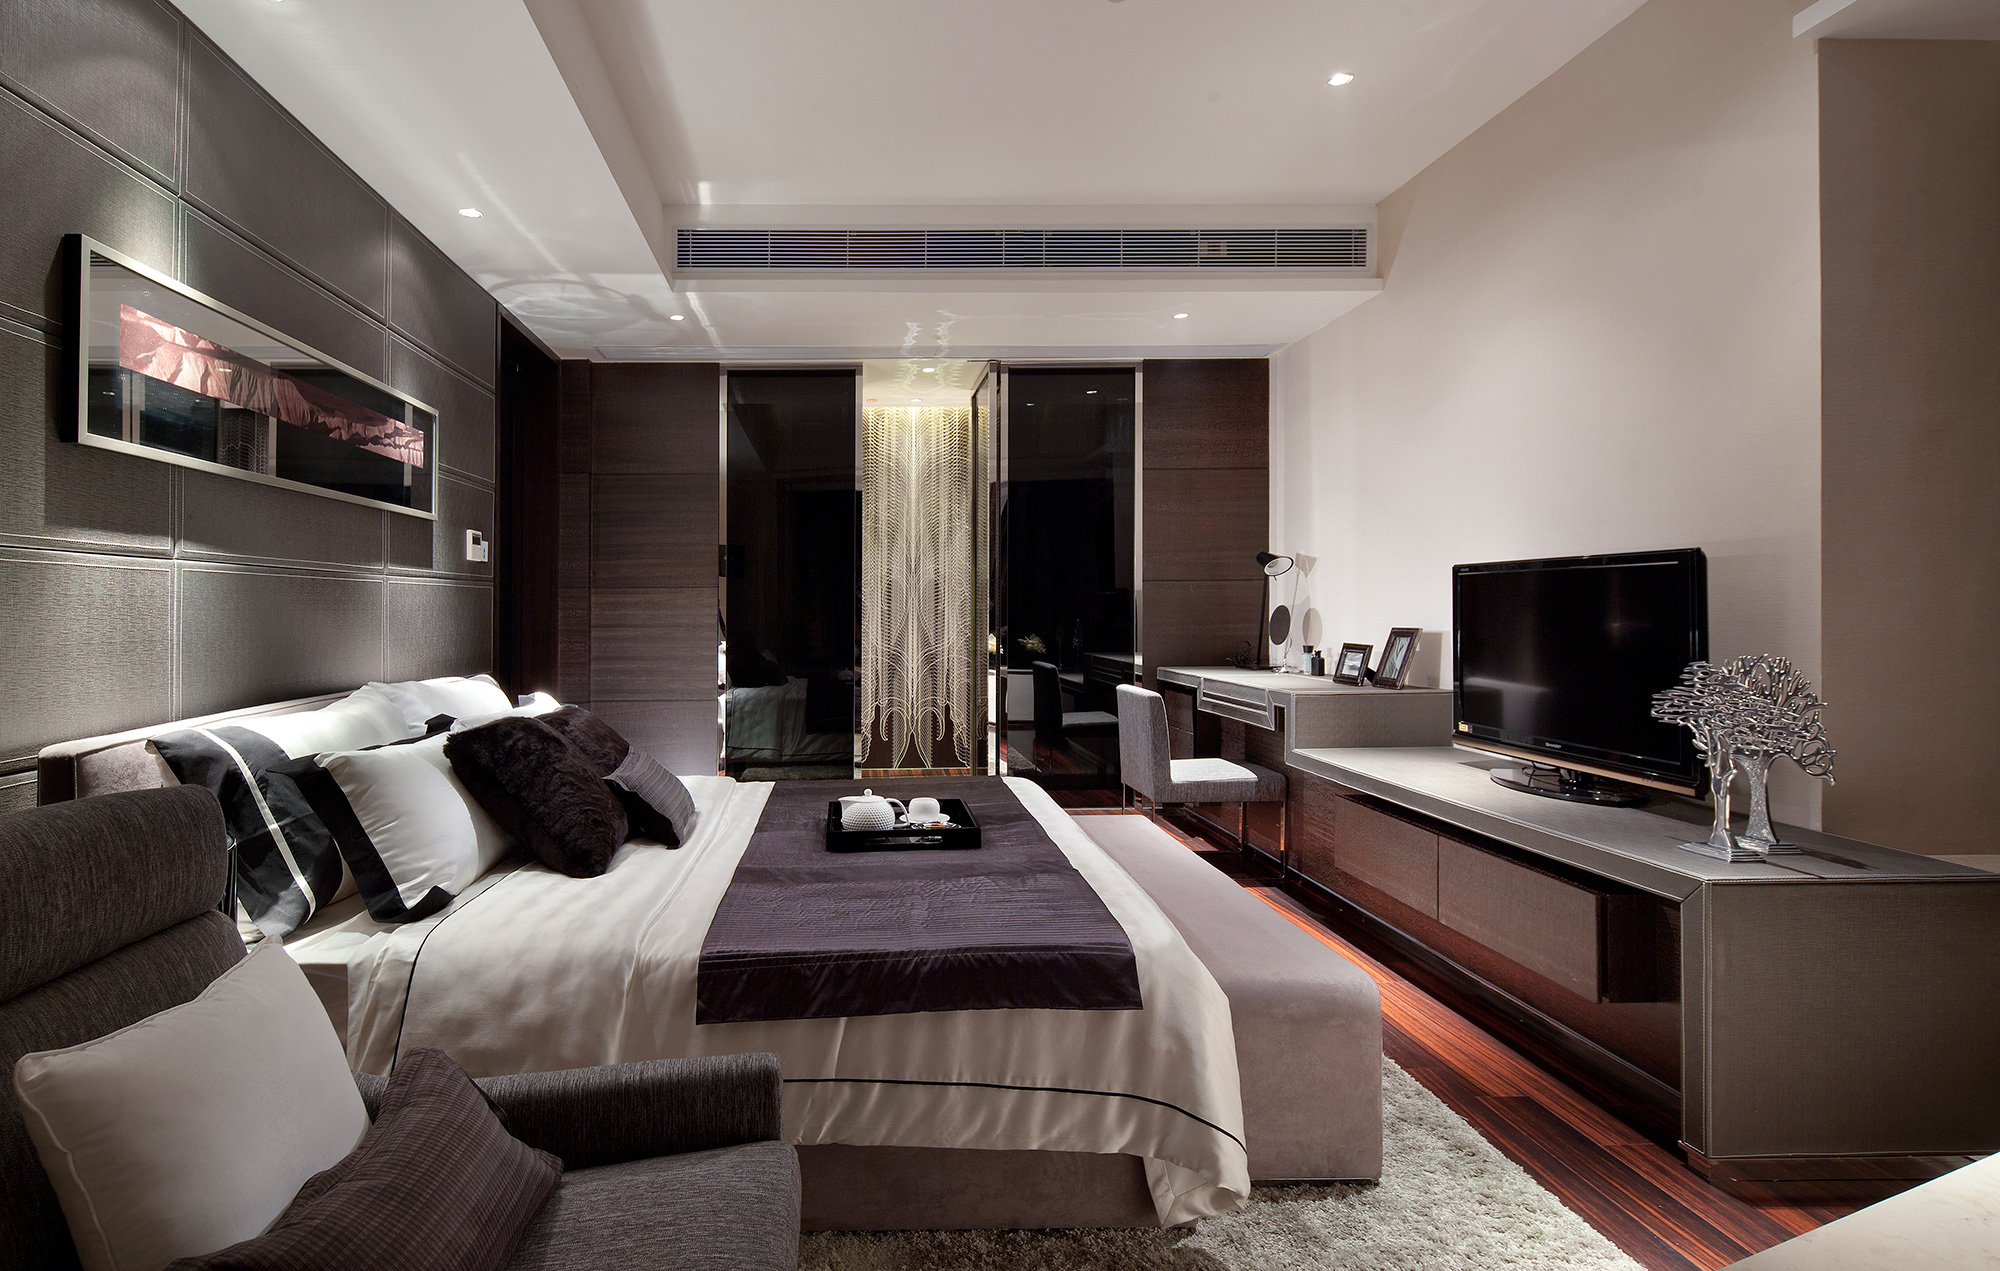 Synergistic modern spaces by steve leung Pics of master bedroom suites